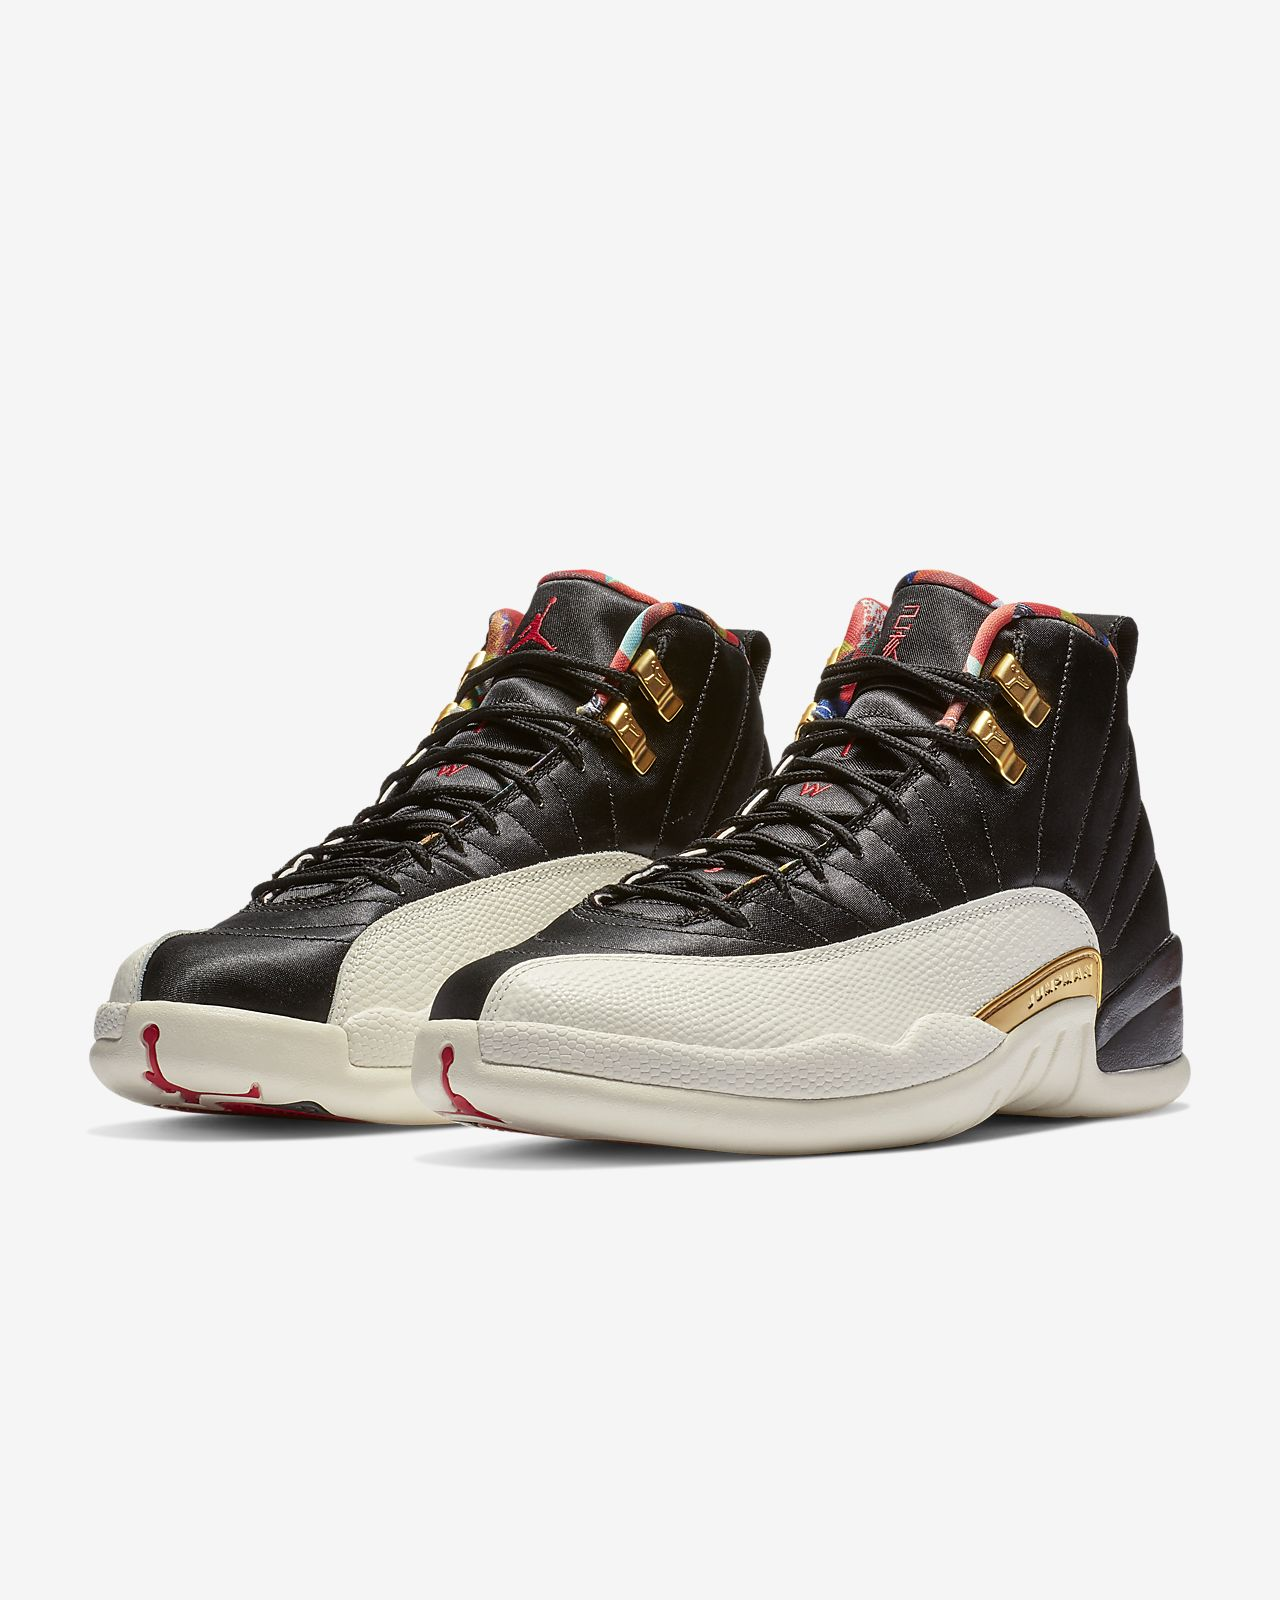 new styles 240e5 ad0c2 Air Jordan 12 Retro CNY Men s Shoe. jordan 12 nikeid